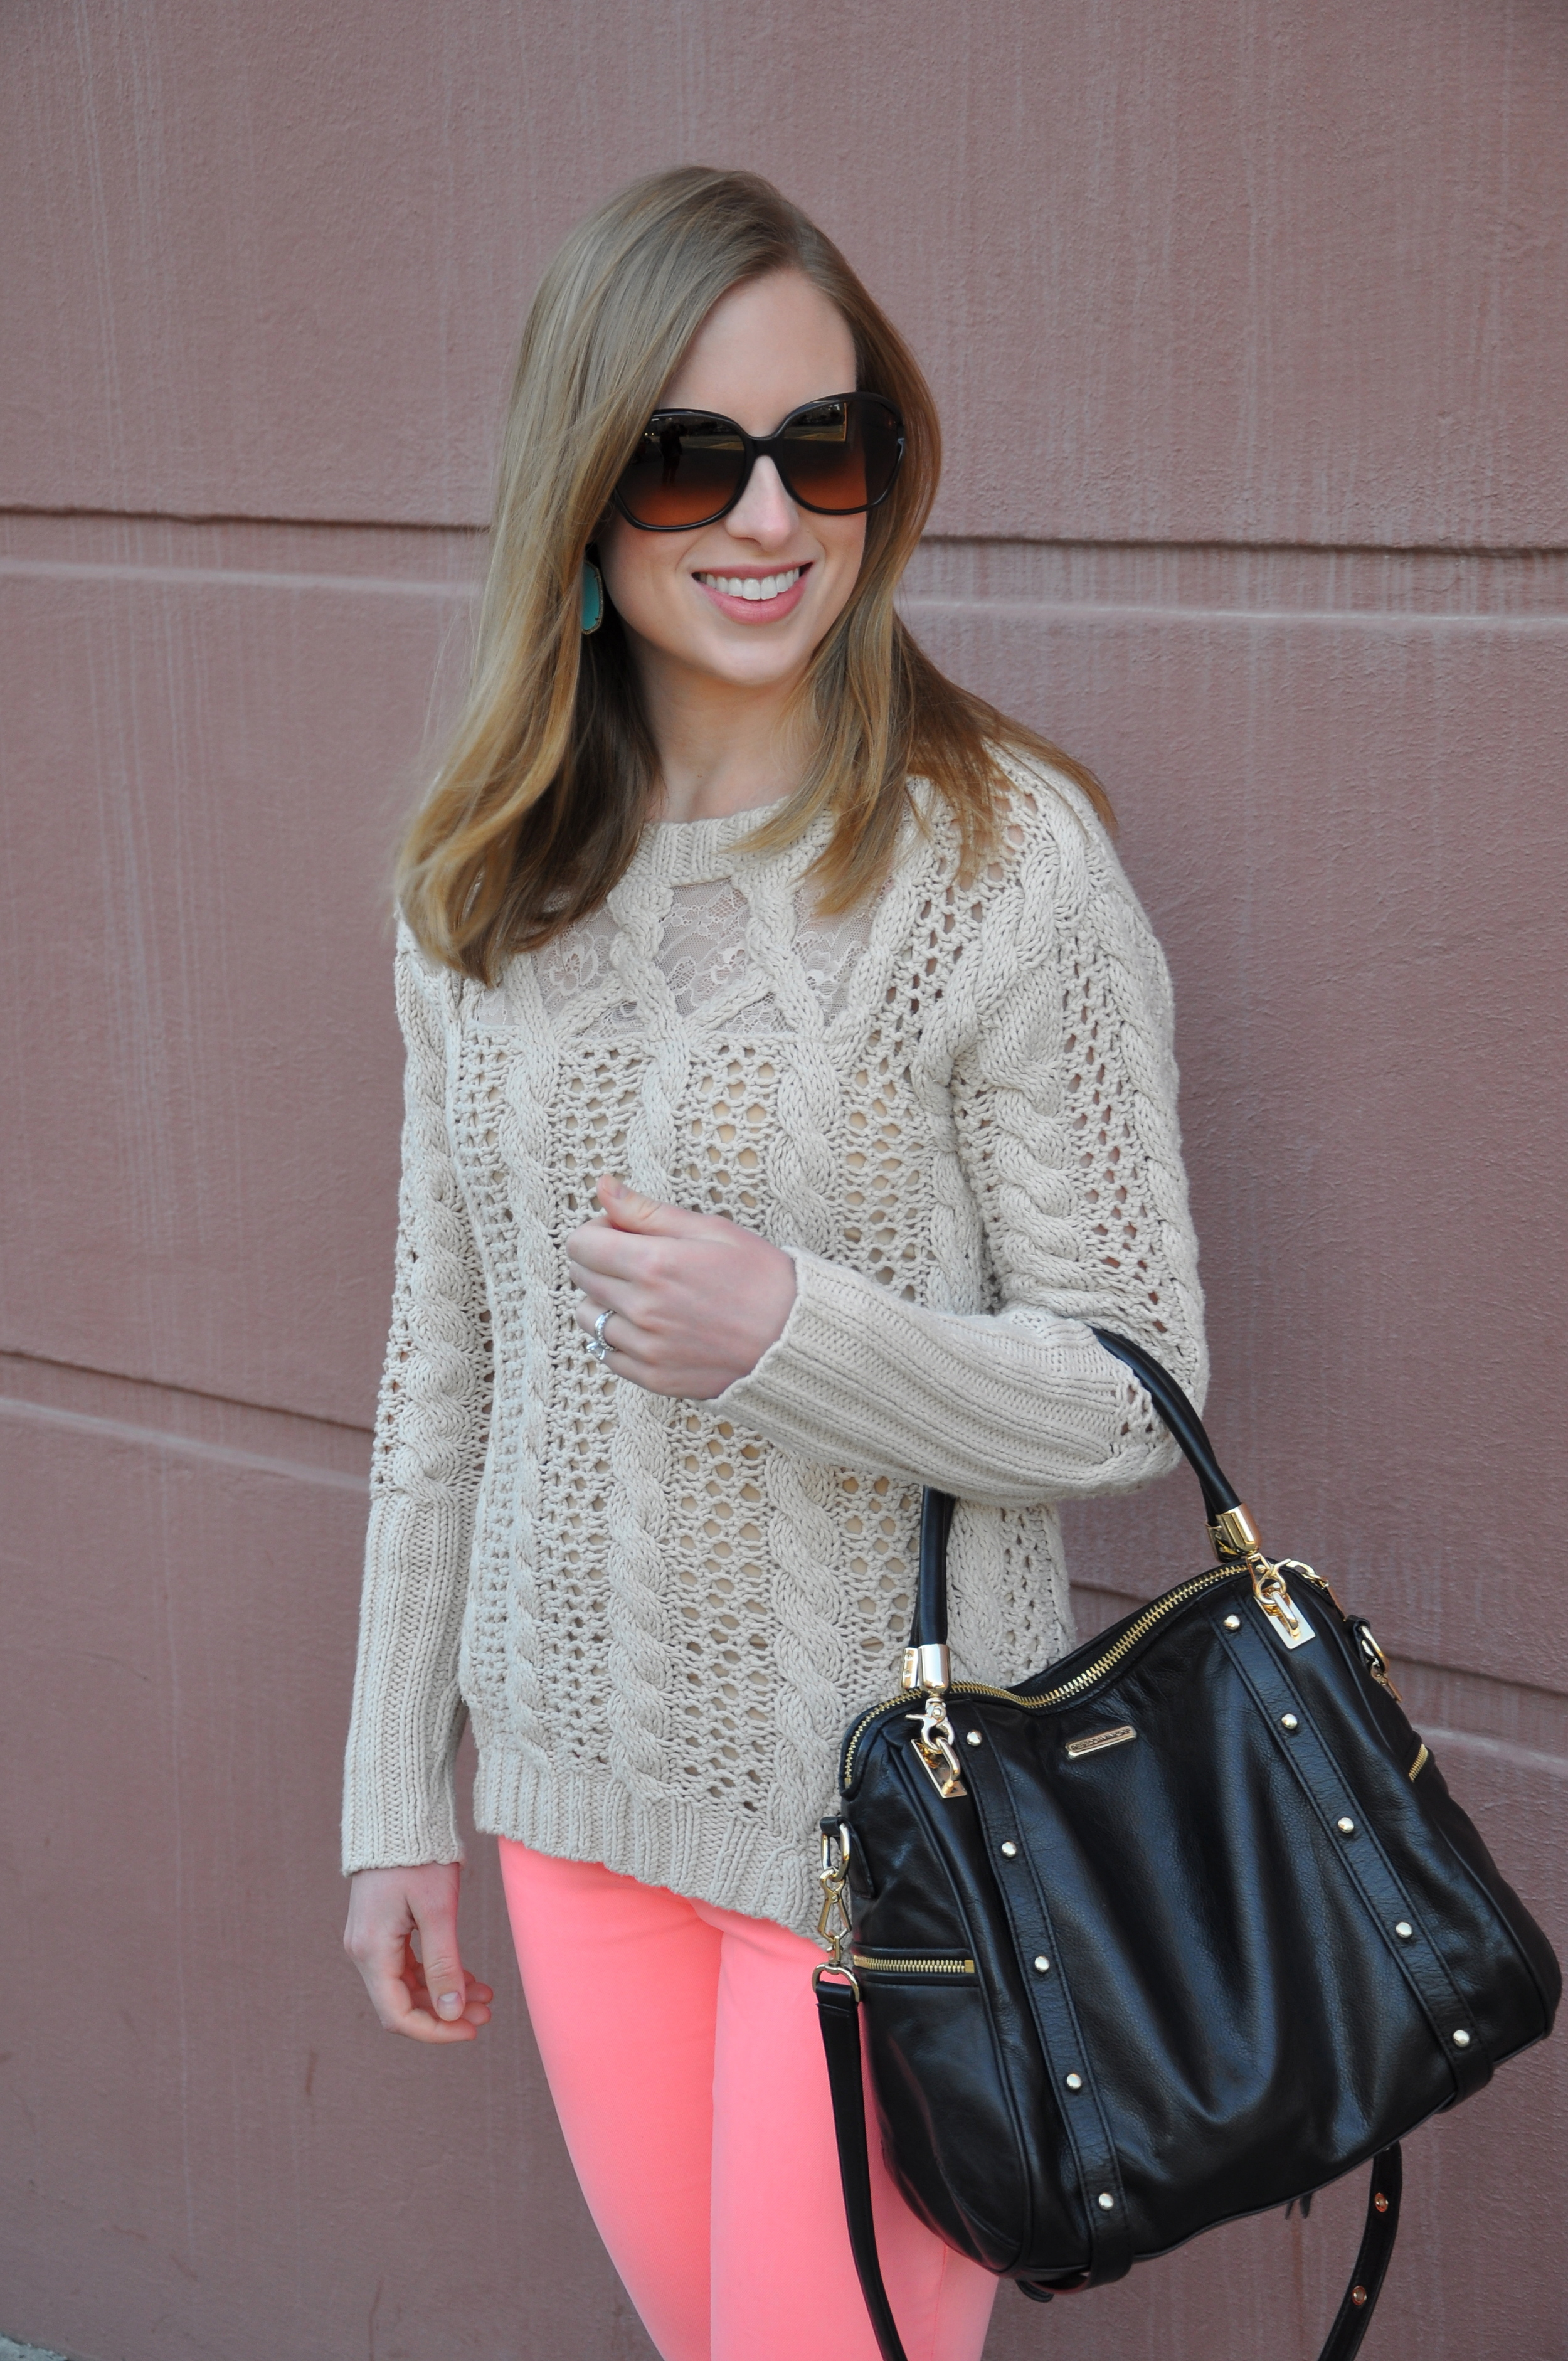 Anthropologie sweater, Madewell jeans, Kendra Scott earrings (very similar), J. Crew flats, Rebecca Minkoff bag, Coach sunglasses